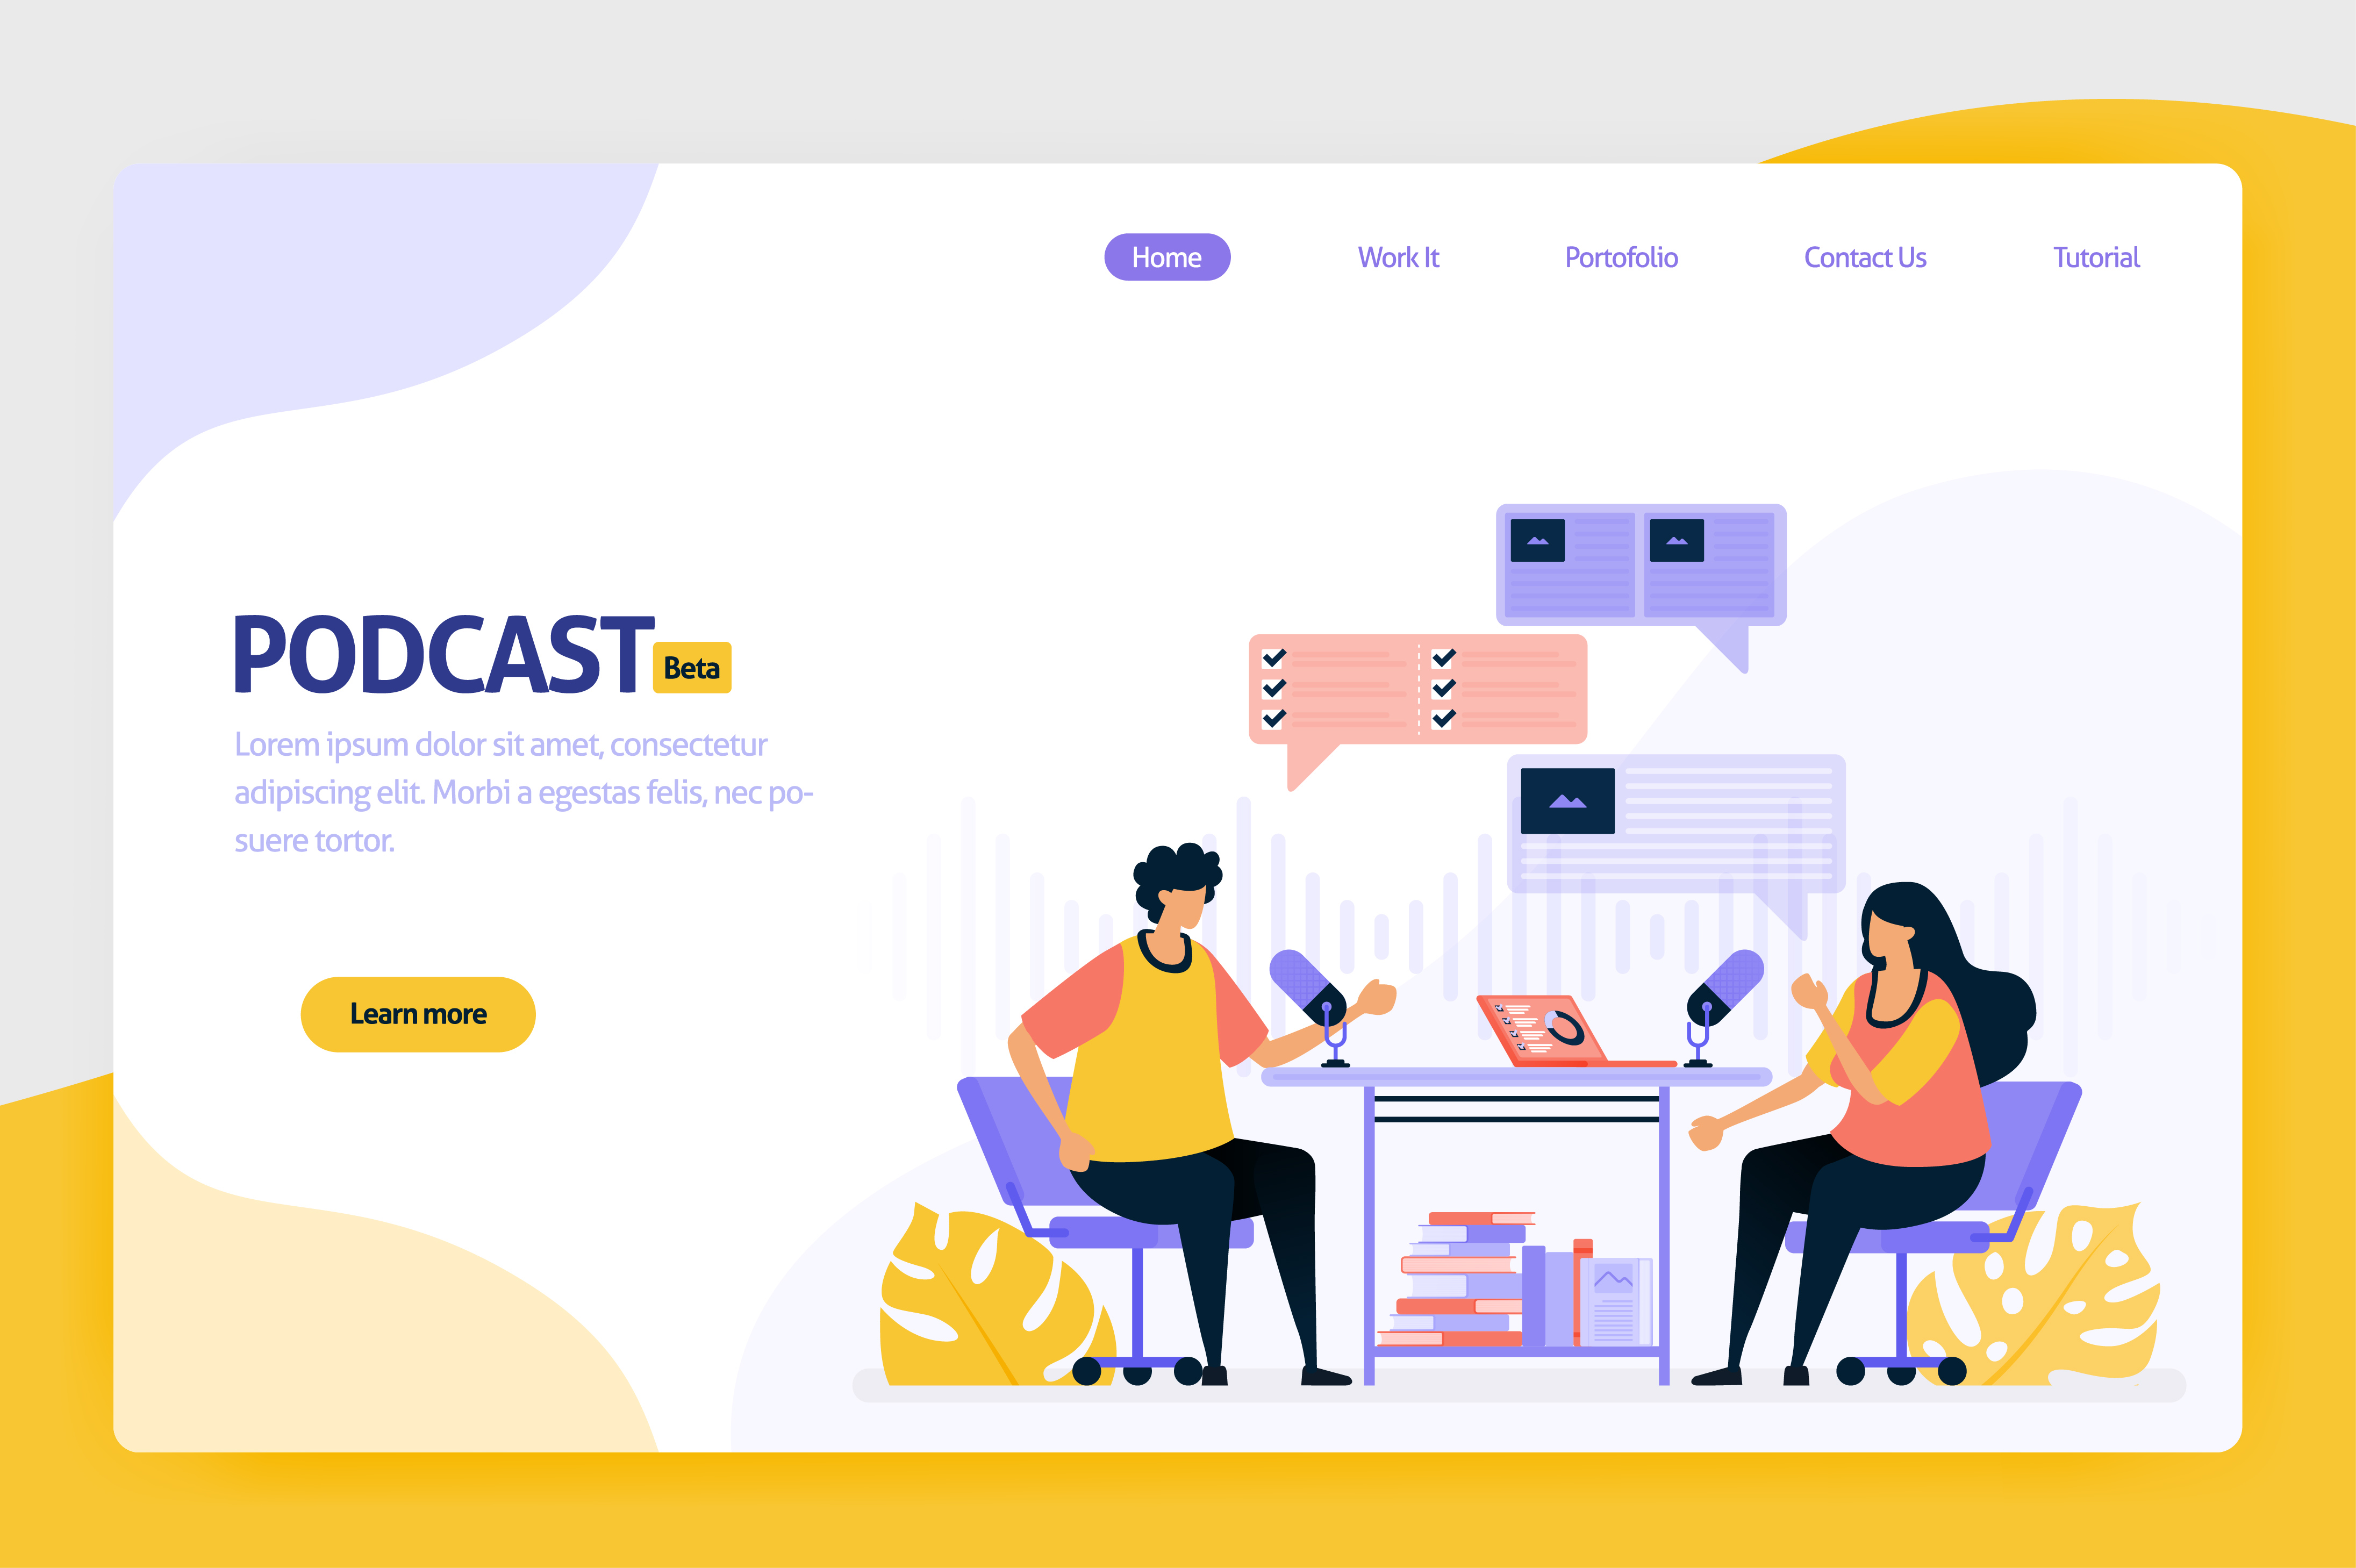 Download Free Illustration Of Podcast Broadcasting Grafik Von Setiawanarief111 for Cricut Explore, Silhouette and other cutting machines.